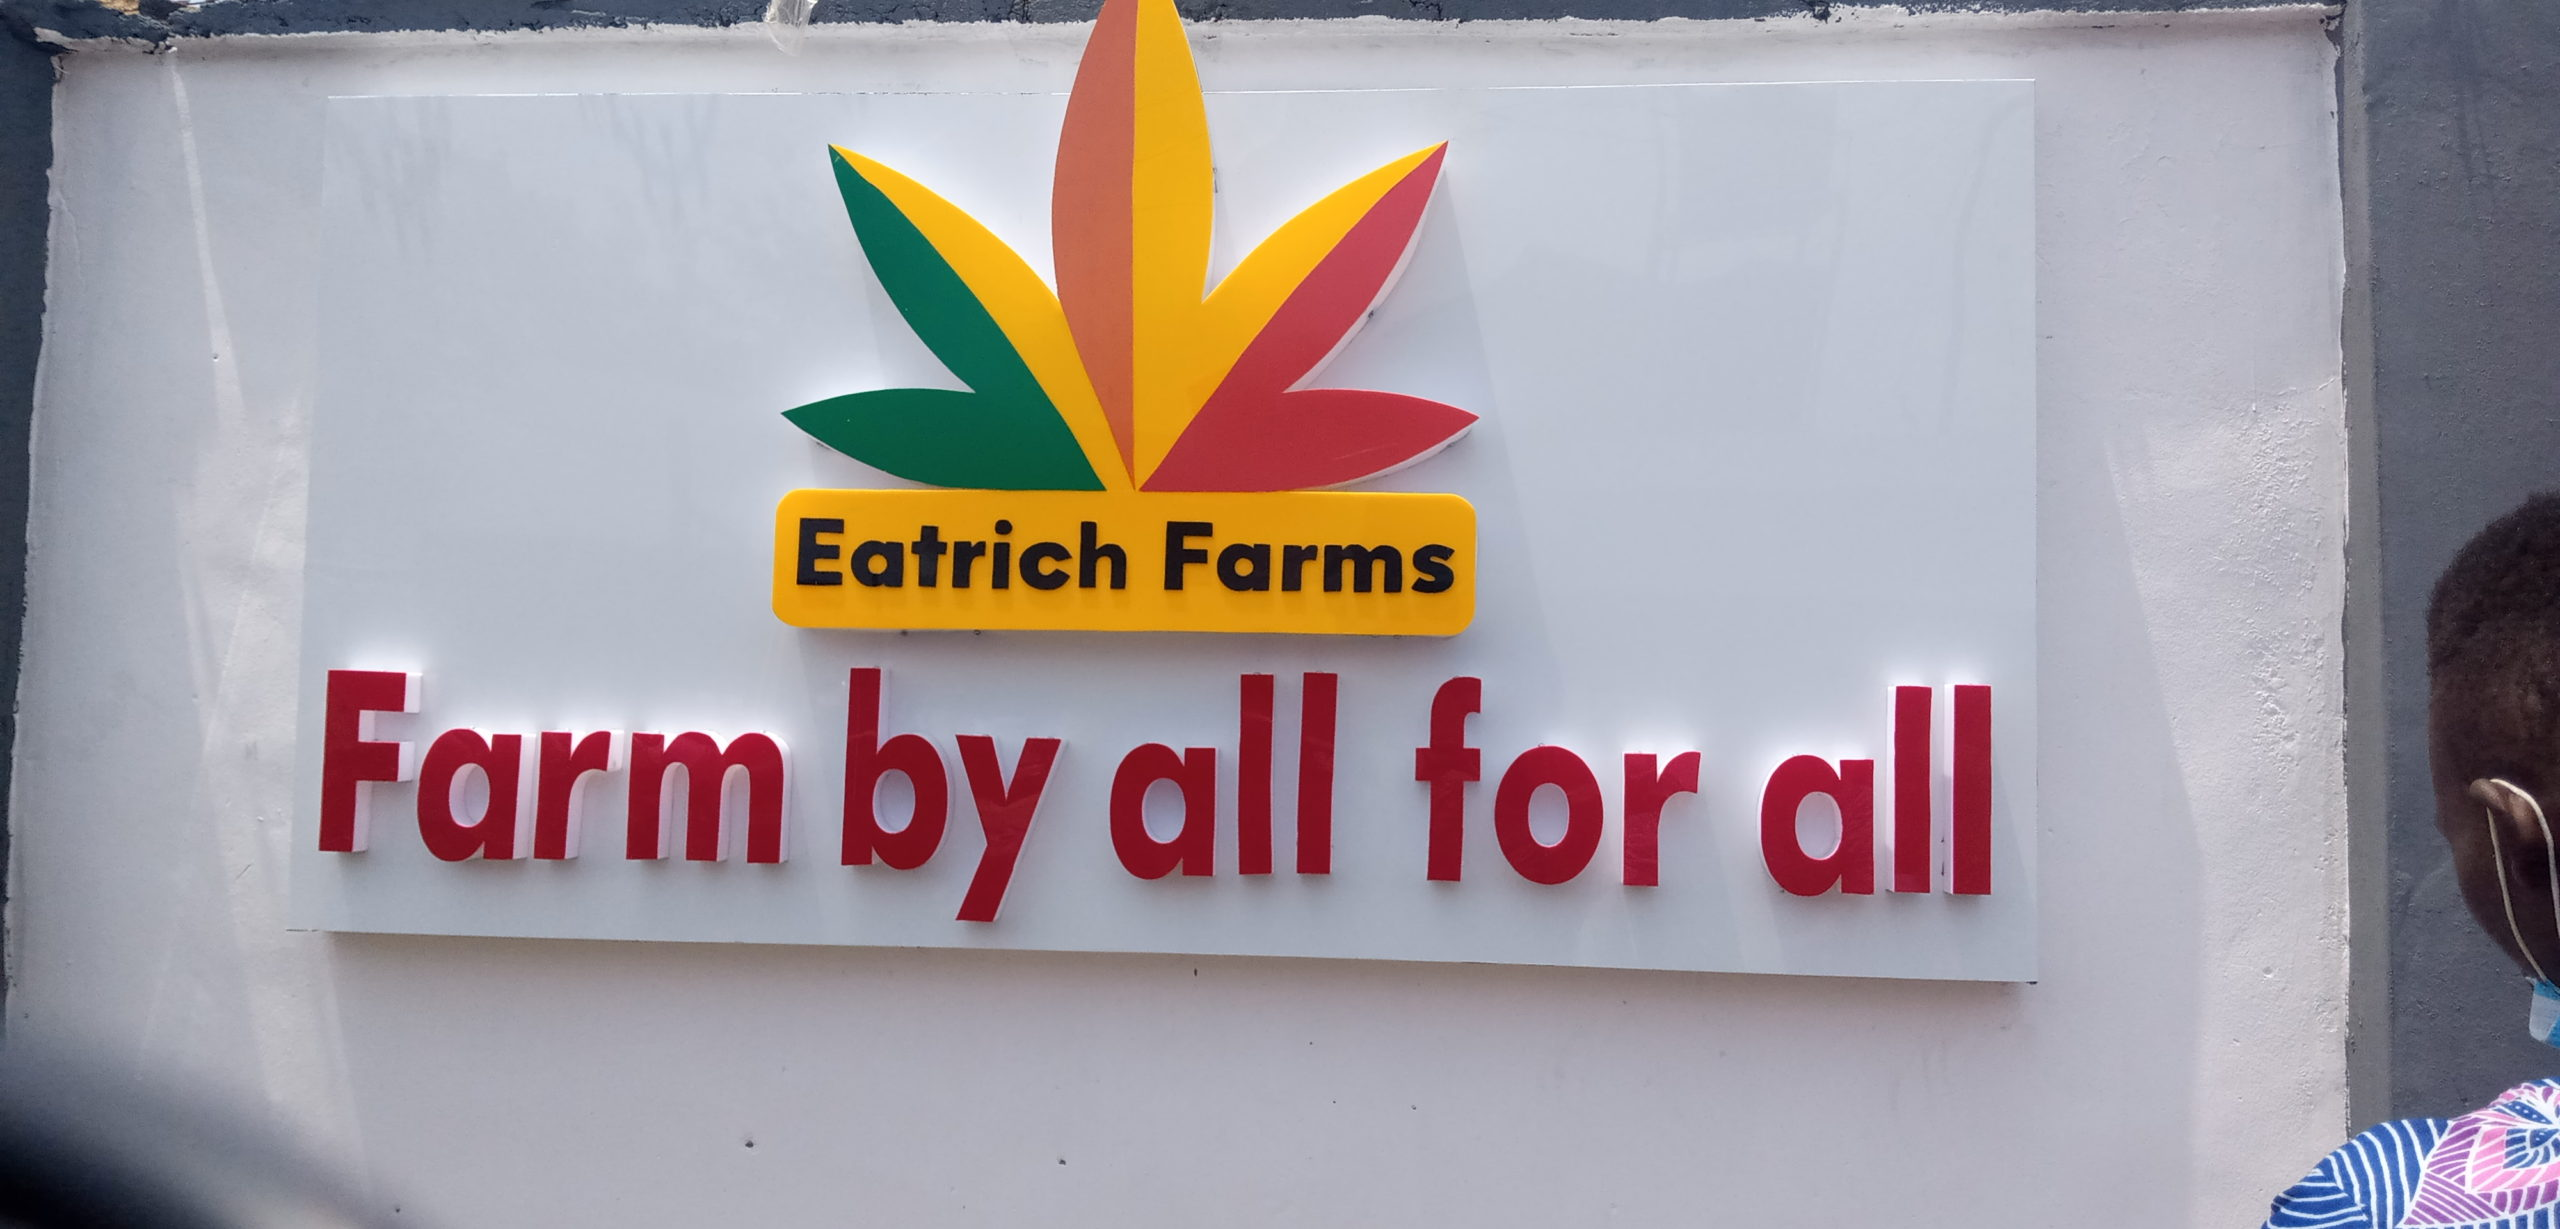 After FIJ's Report, Police Release Ex-Workers, Investors Detained by Eatrich Farms